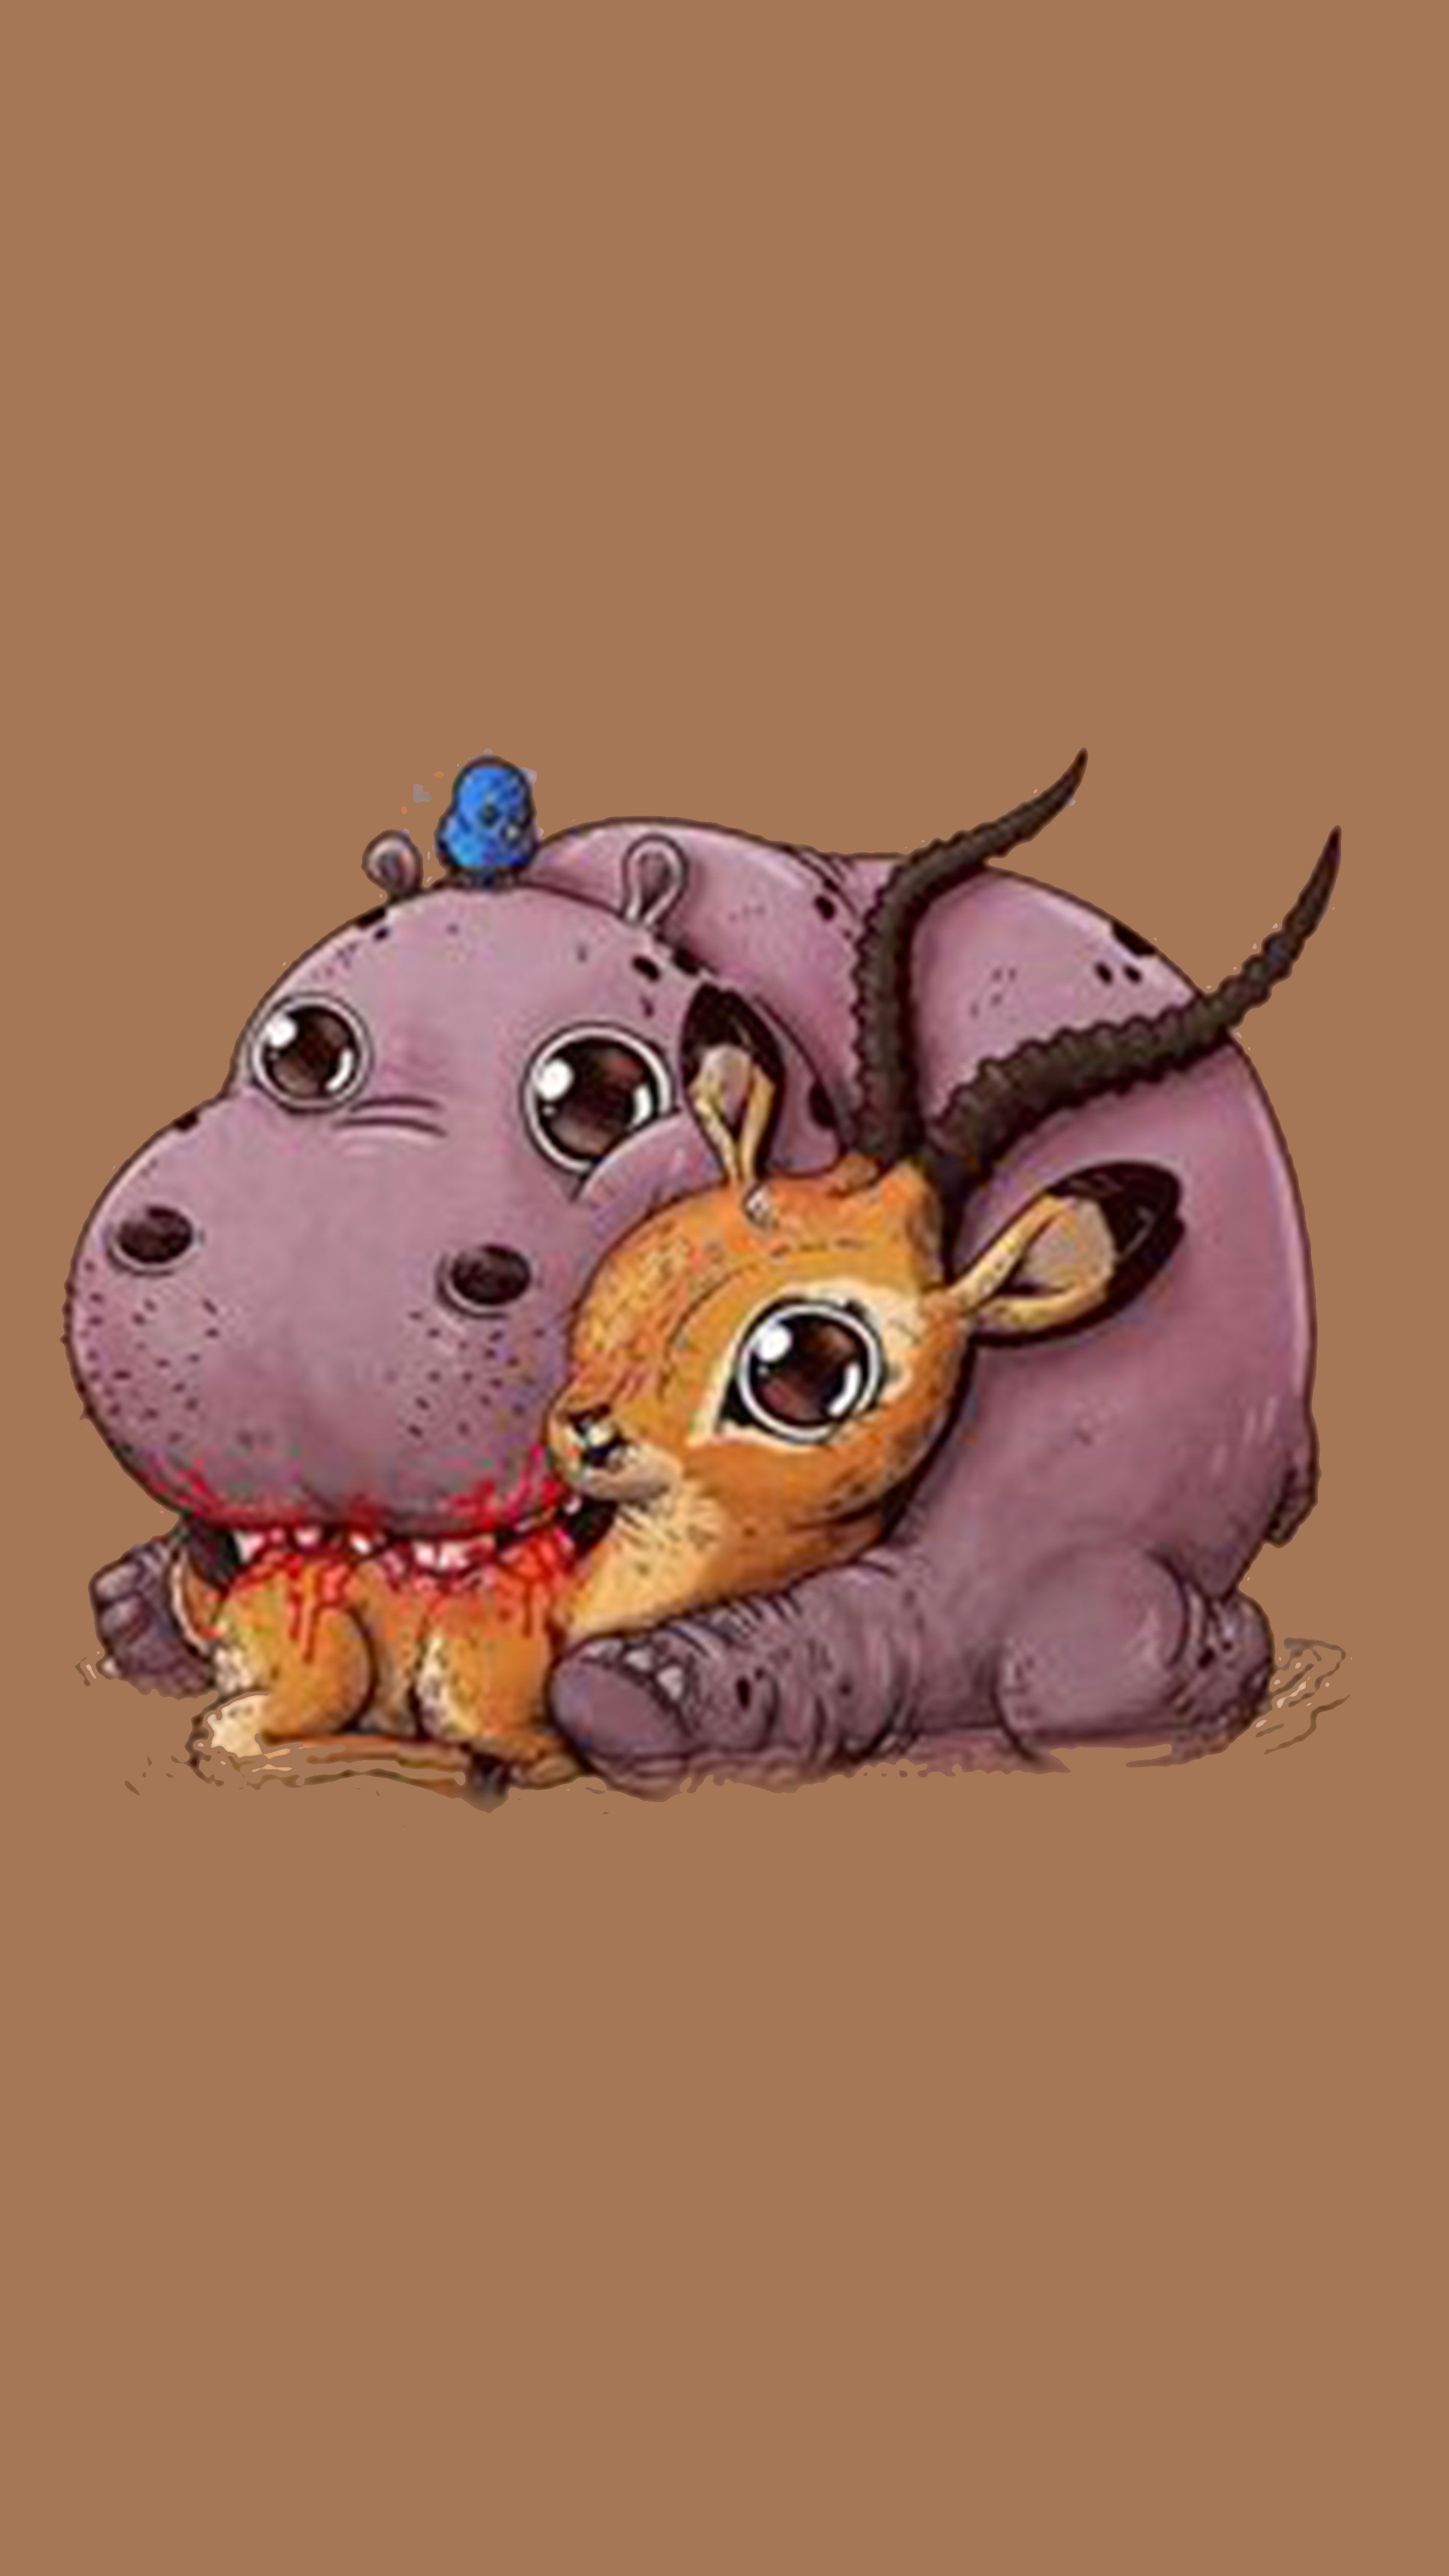 Pin by Dillo Tenório on animals Pinterest Drawings